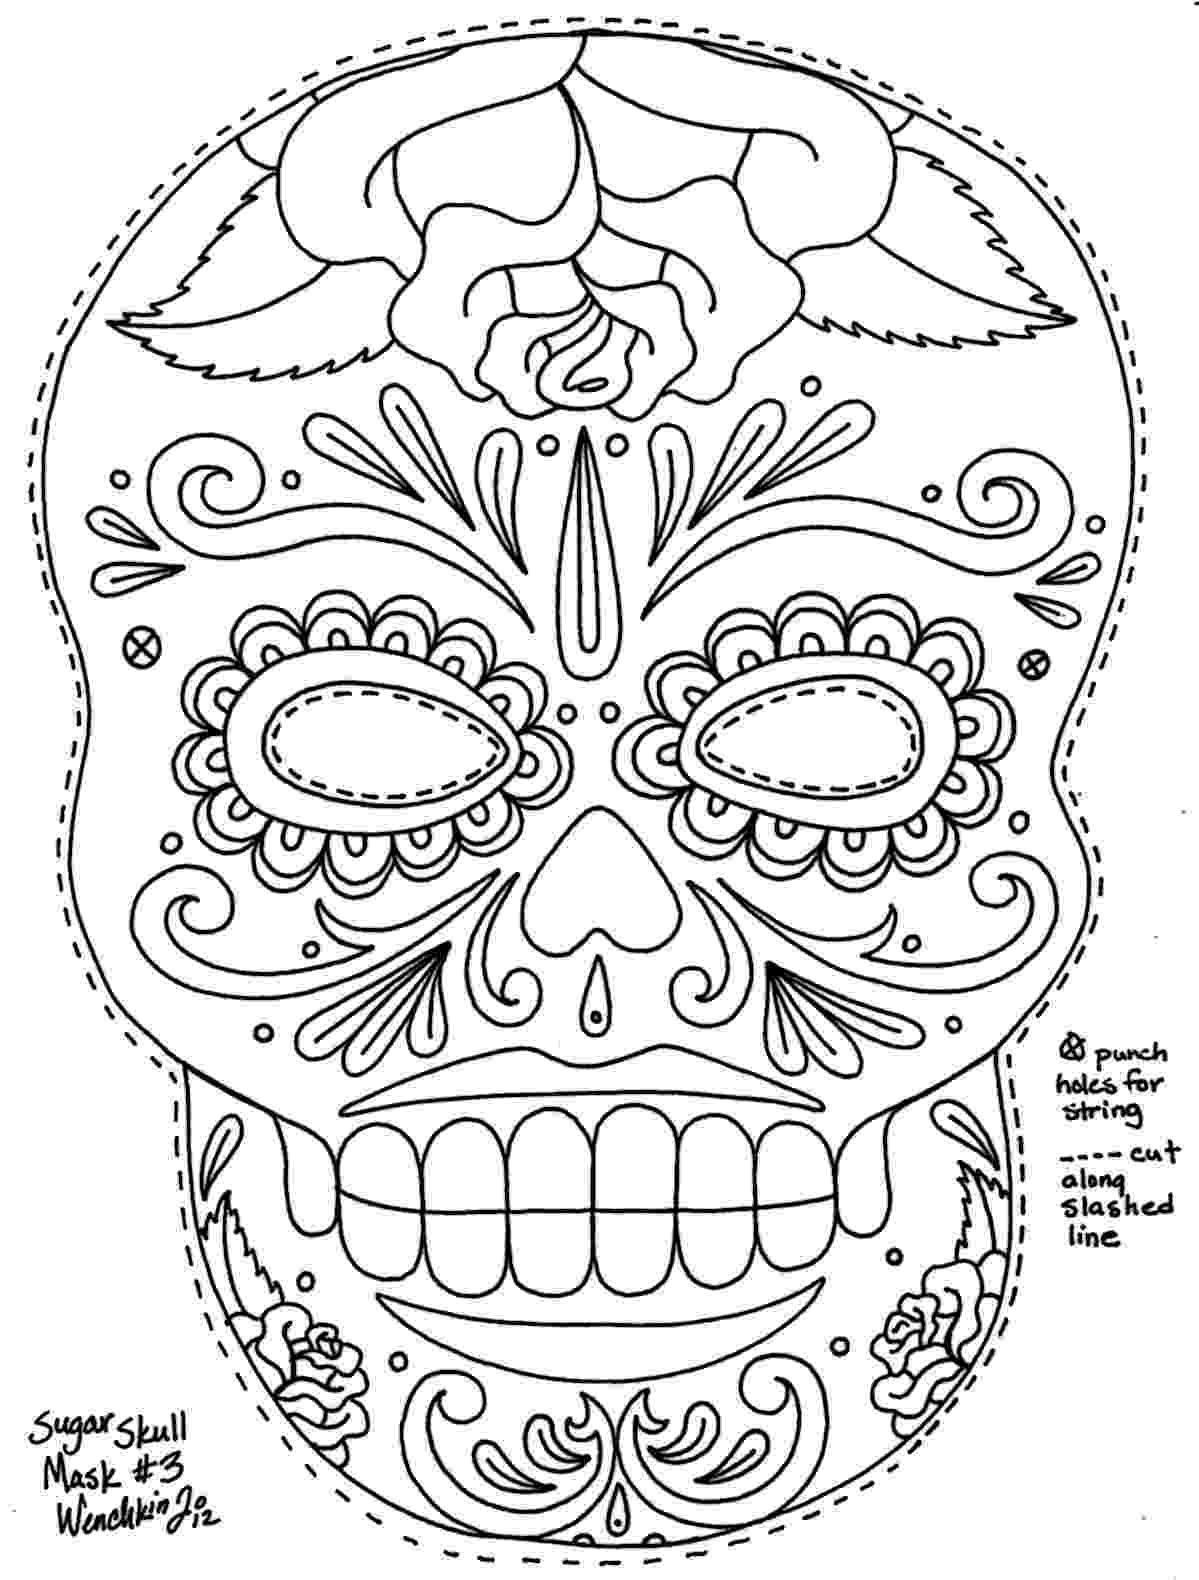 day of the dead printable pictures yucca flats nm october 2012 the of day dead printable pictures